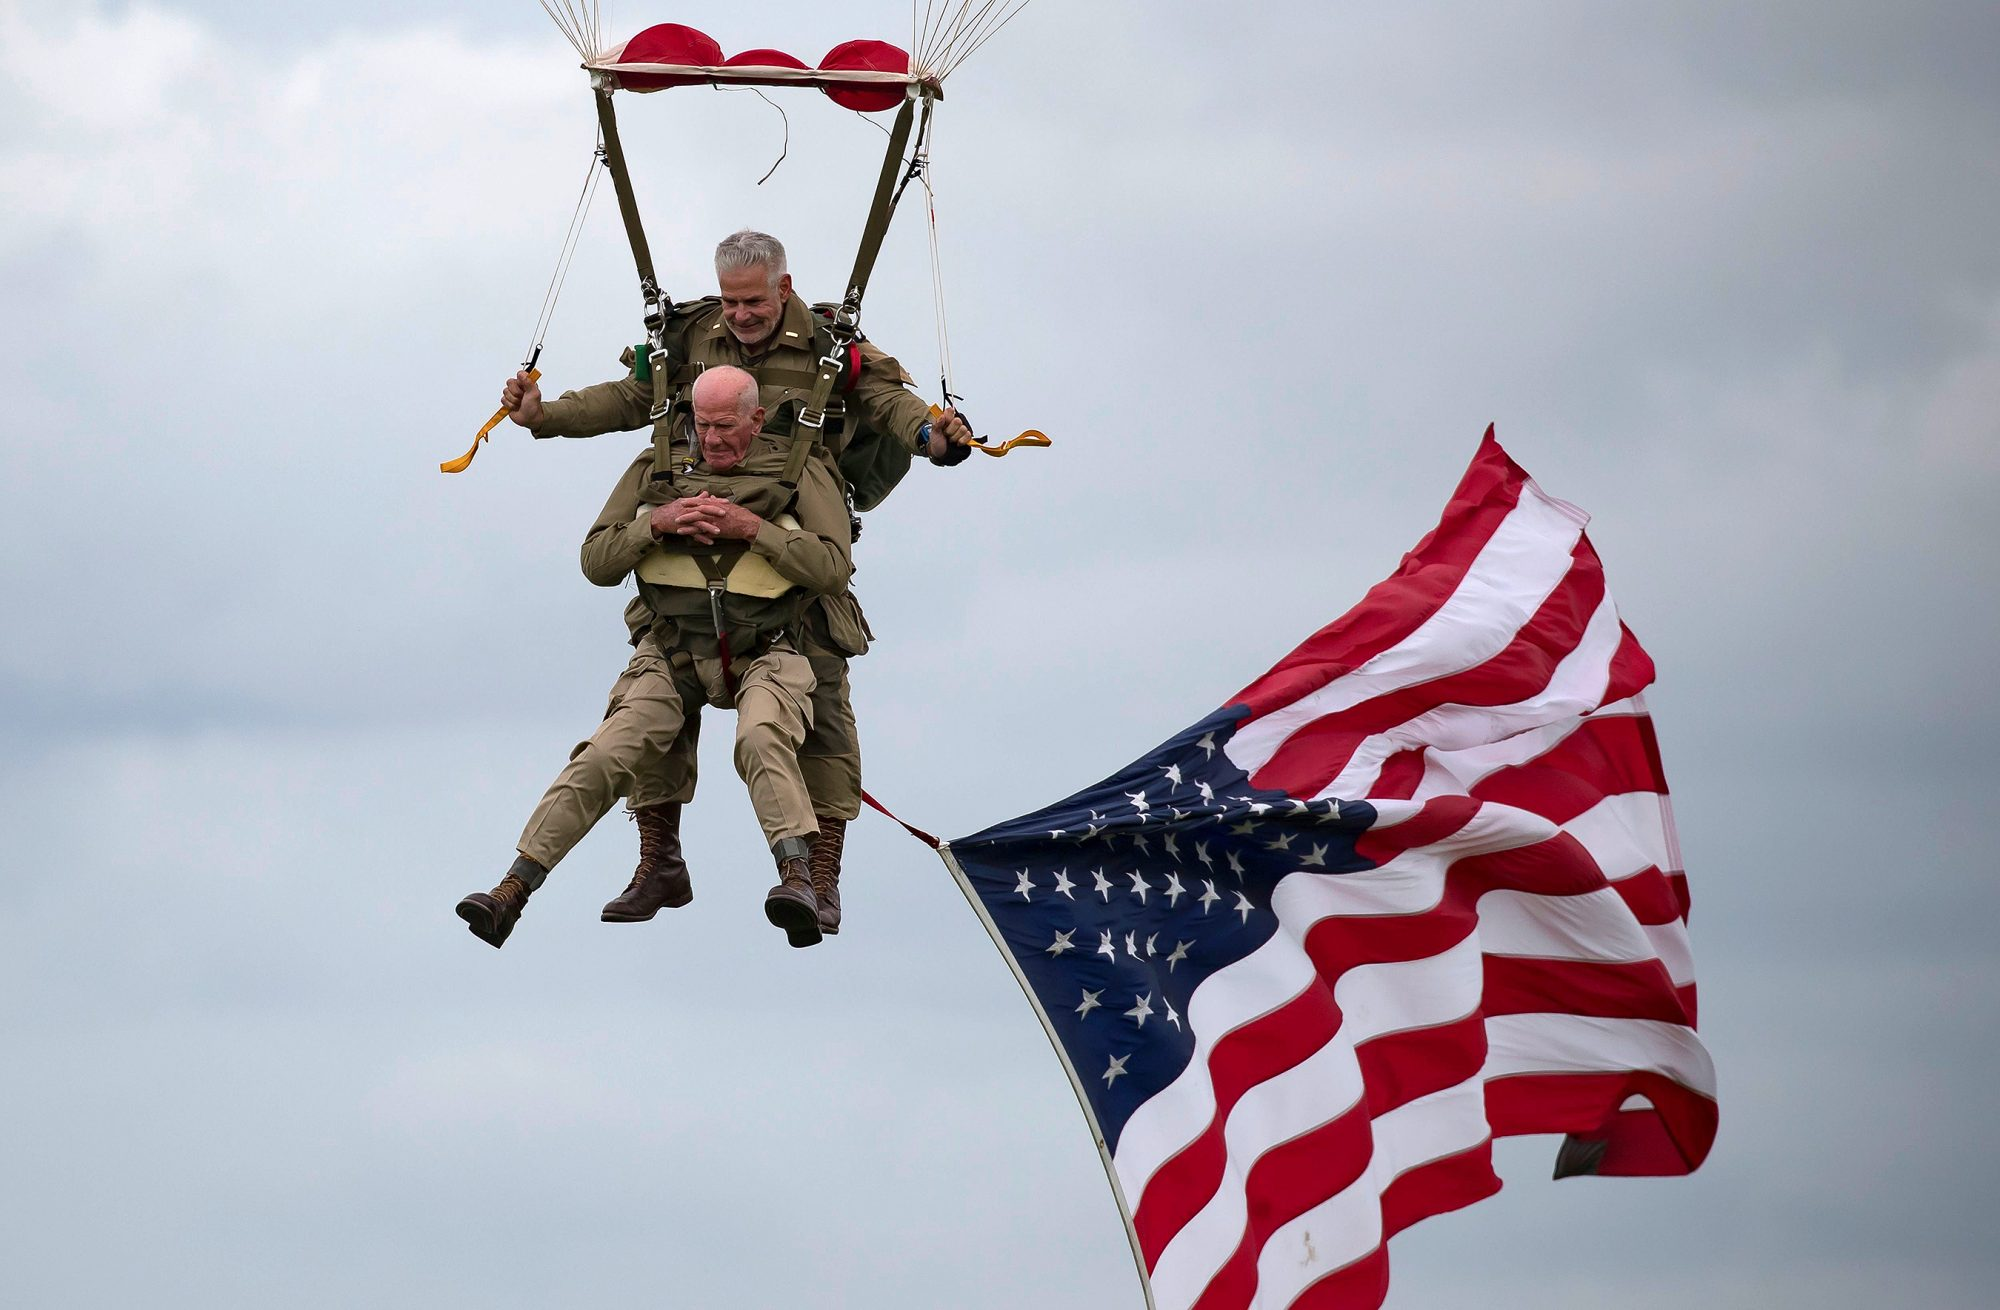 D Day paratrooper